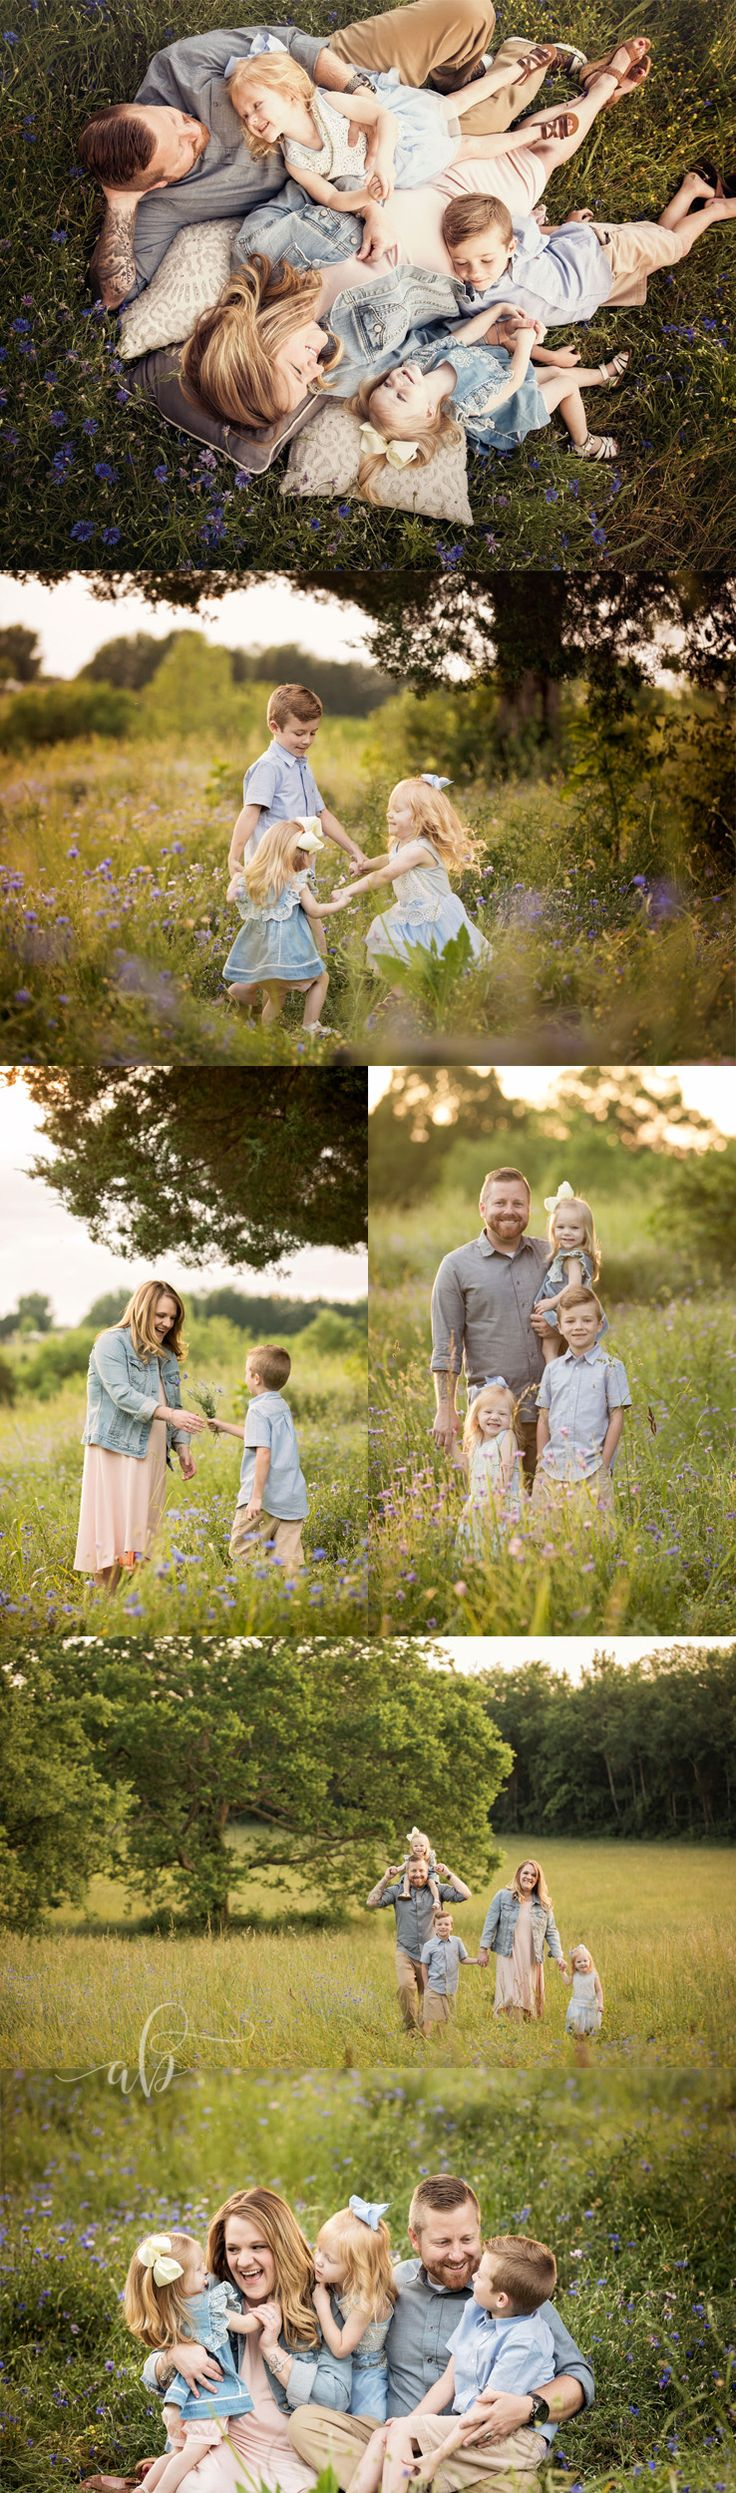 Knoxville and Gatlinburg family photographer | Alisha Bacon Photography A great mixture of posed and whimsical candid family pictures. Beautiful family poses!